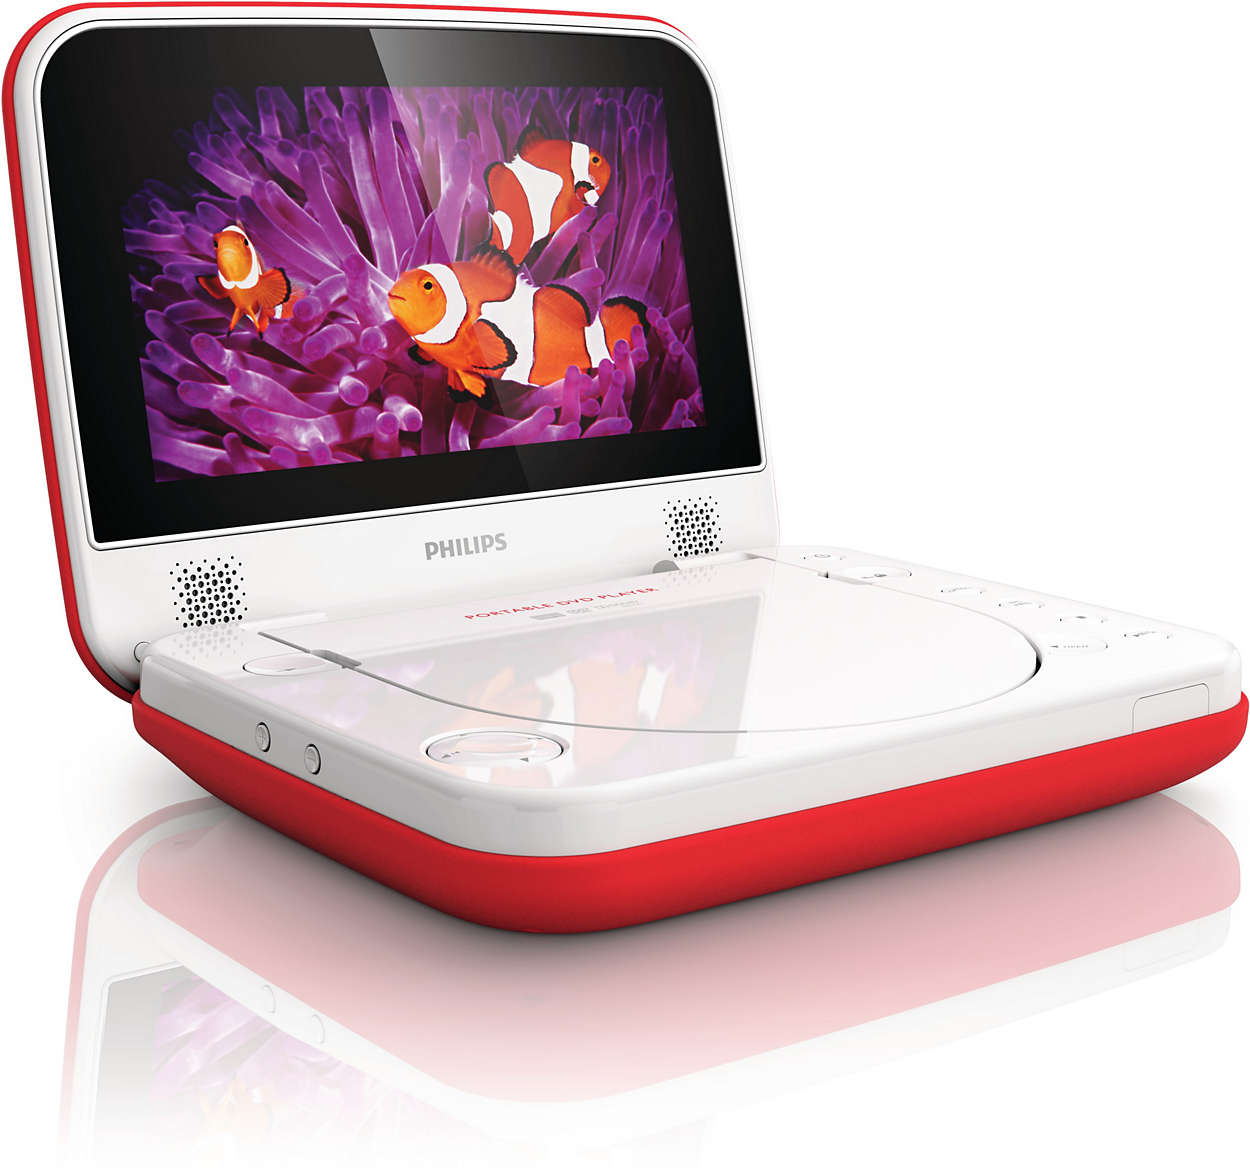 Spill Resistant Portable DVD